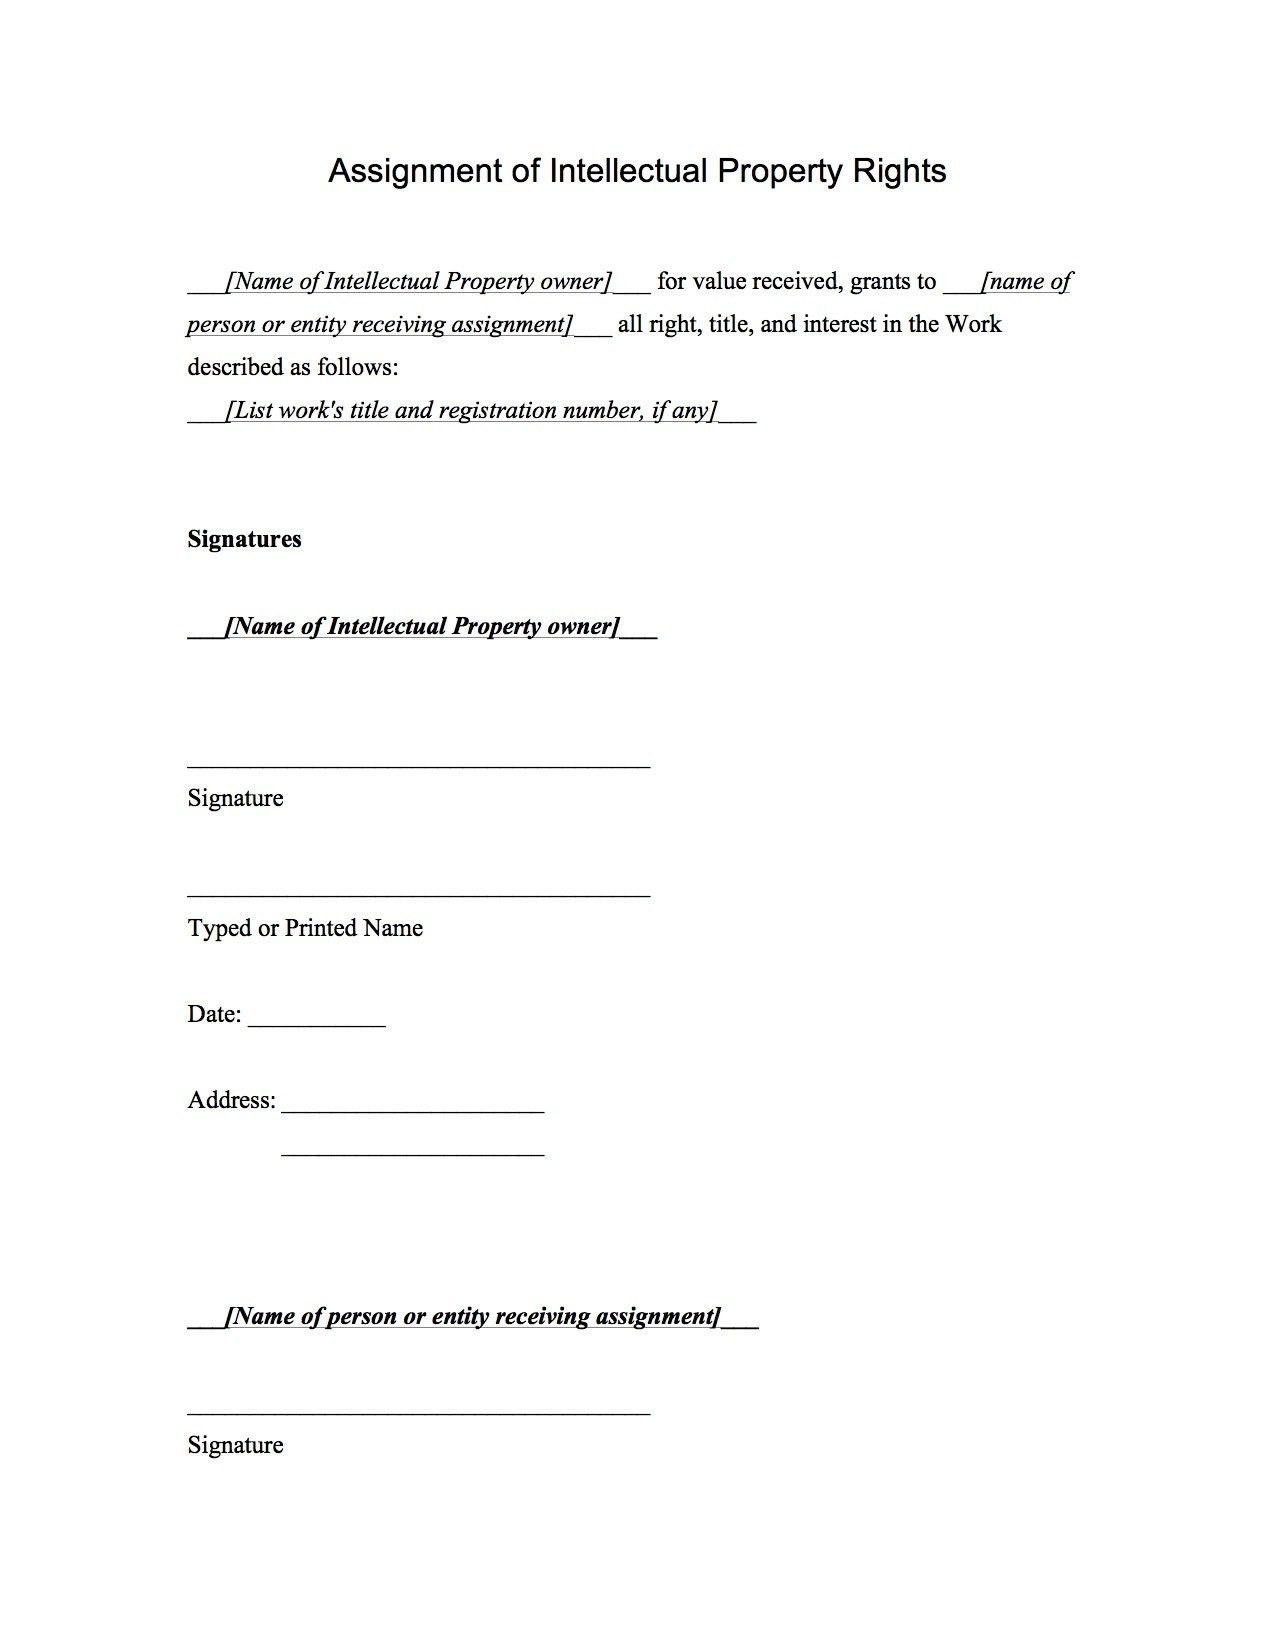 Assignment Of Intellectual Property Rights Agreement Template Regarding Intellectual Property Assignment Agreement Template